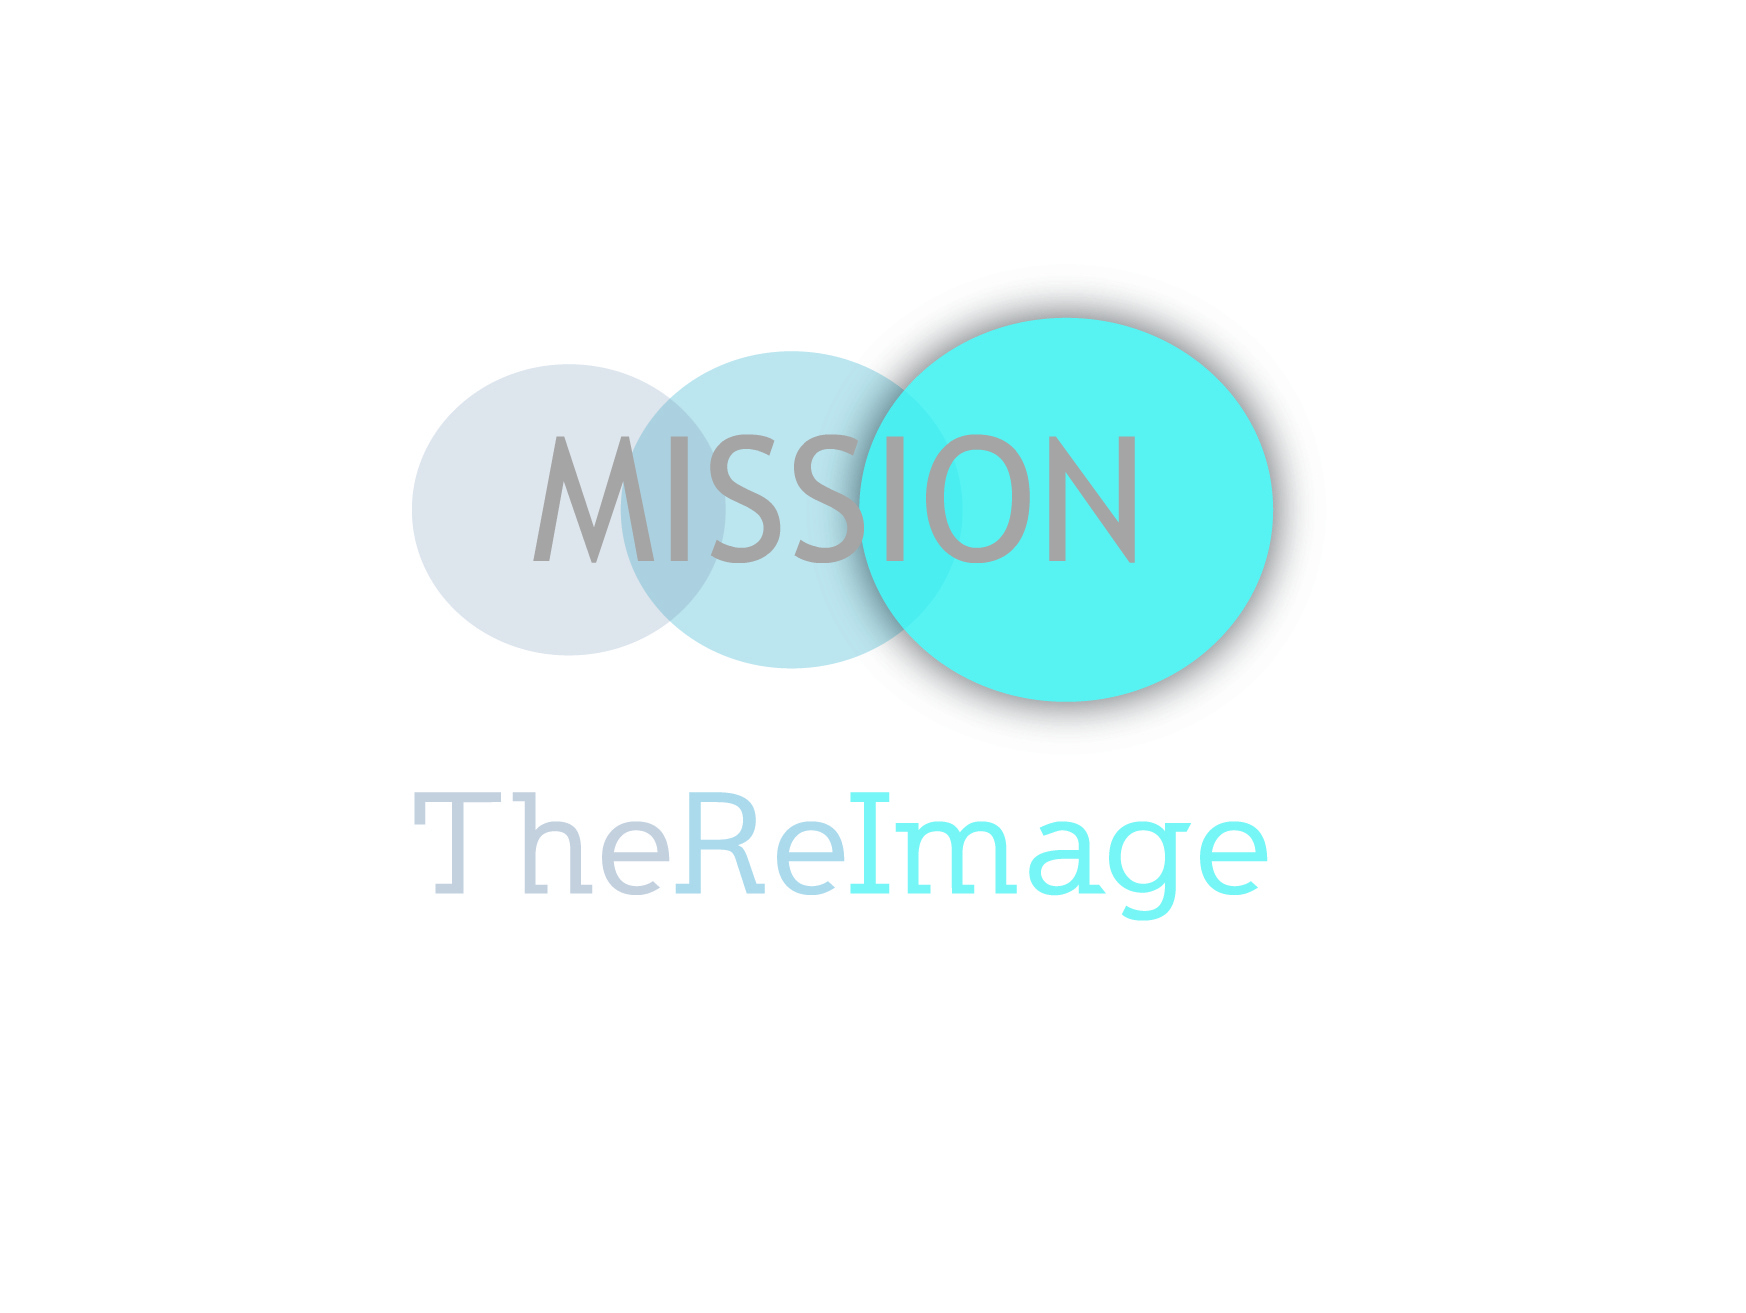 The ReImage Mission